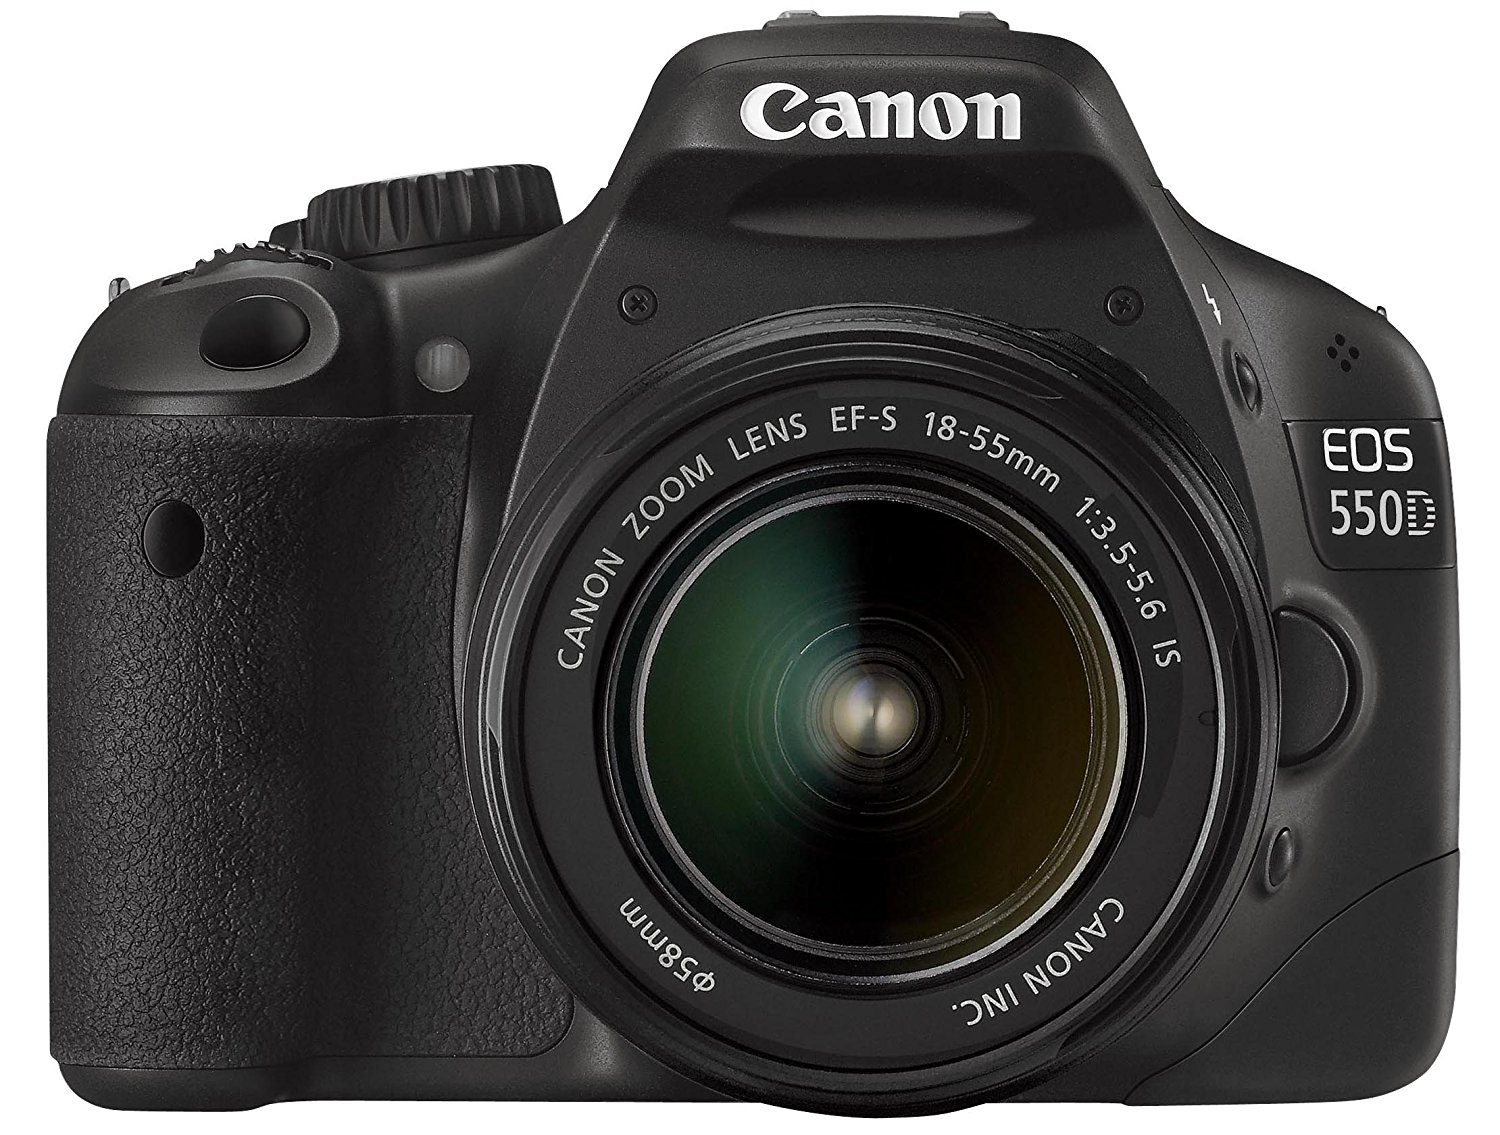 top dslr camera under 20000 rupees